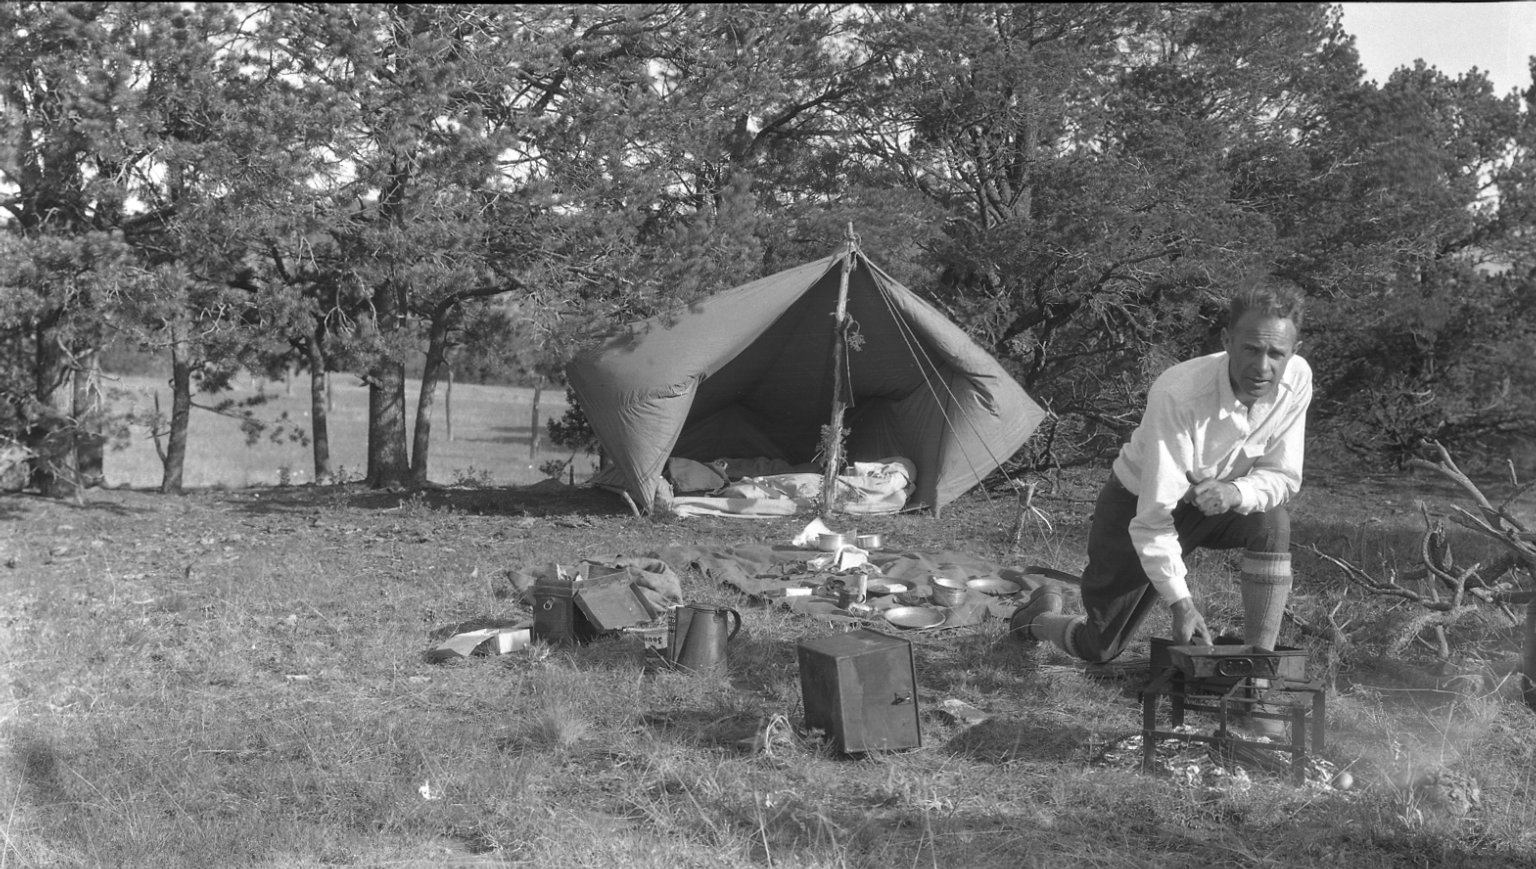 R.J. Niedrach cooking over campfire